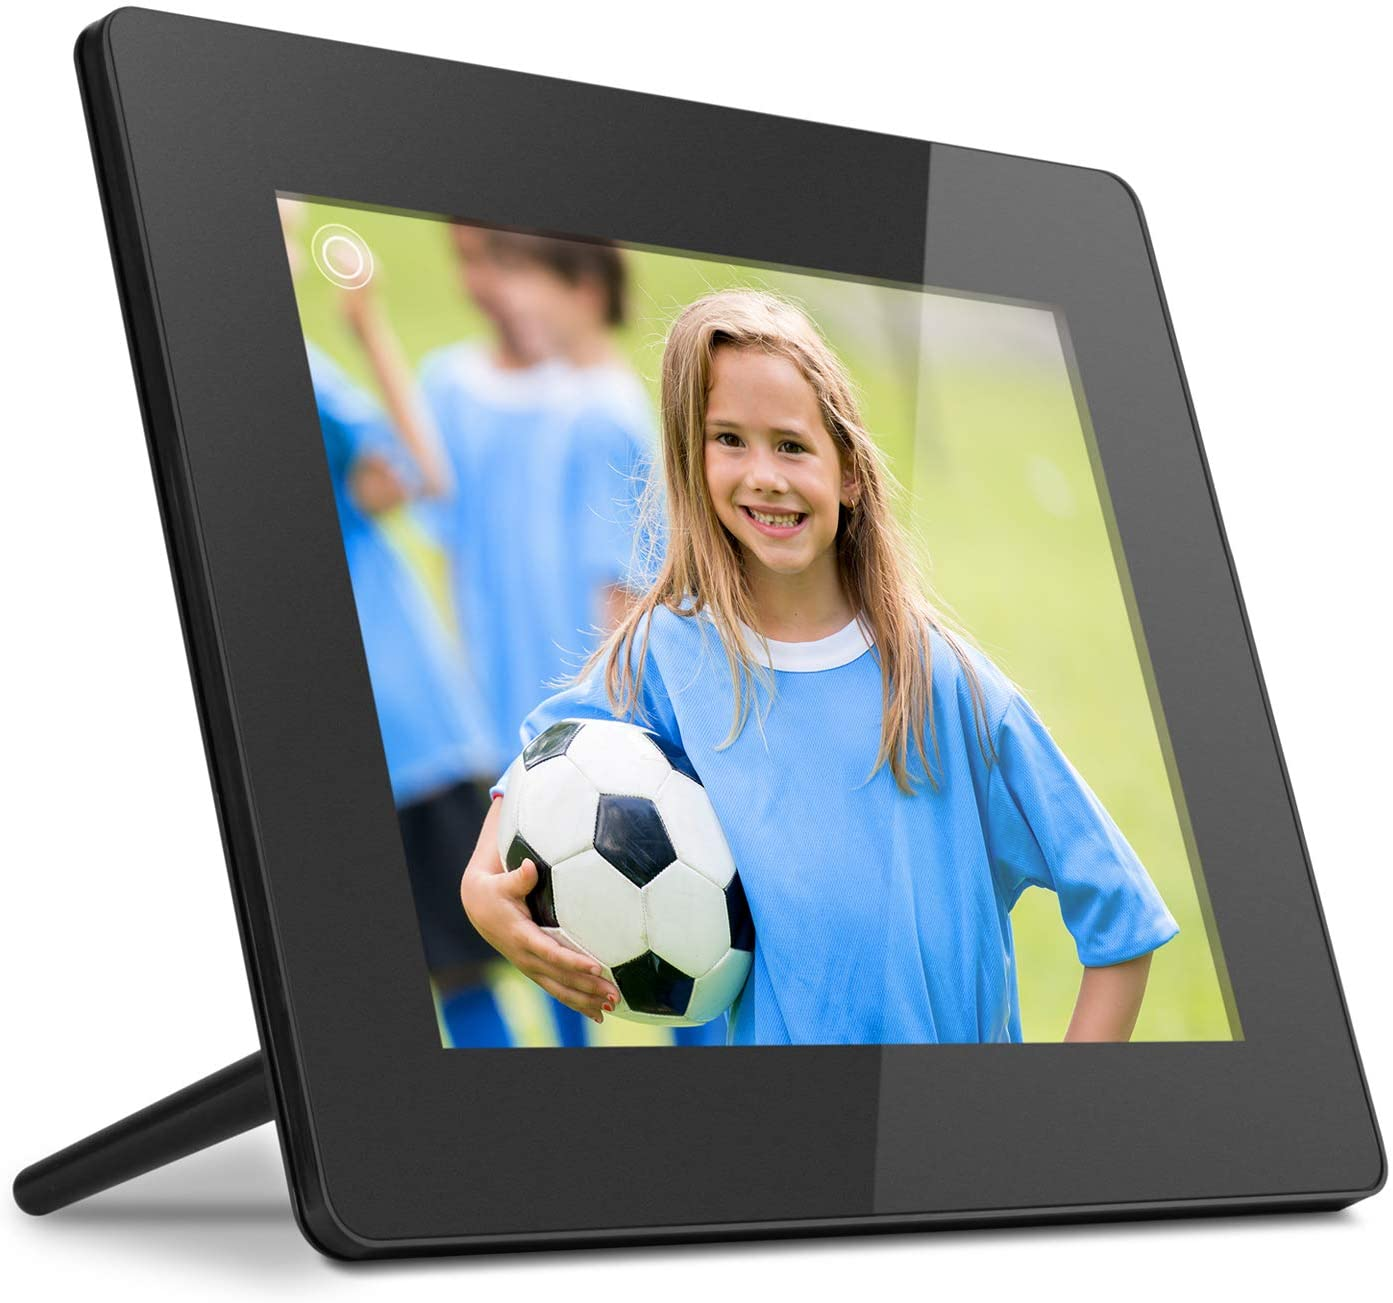 Aluratek 17.3 WiFi Digital Photo Frame with Touchscreen IPS LCD Display /& 16GB Built-in Memory Photo//Music//Video AWS17F